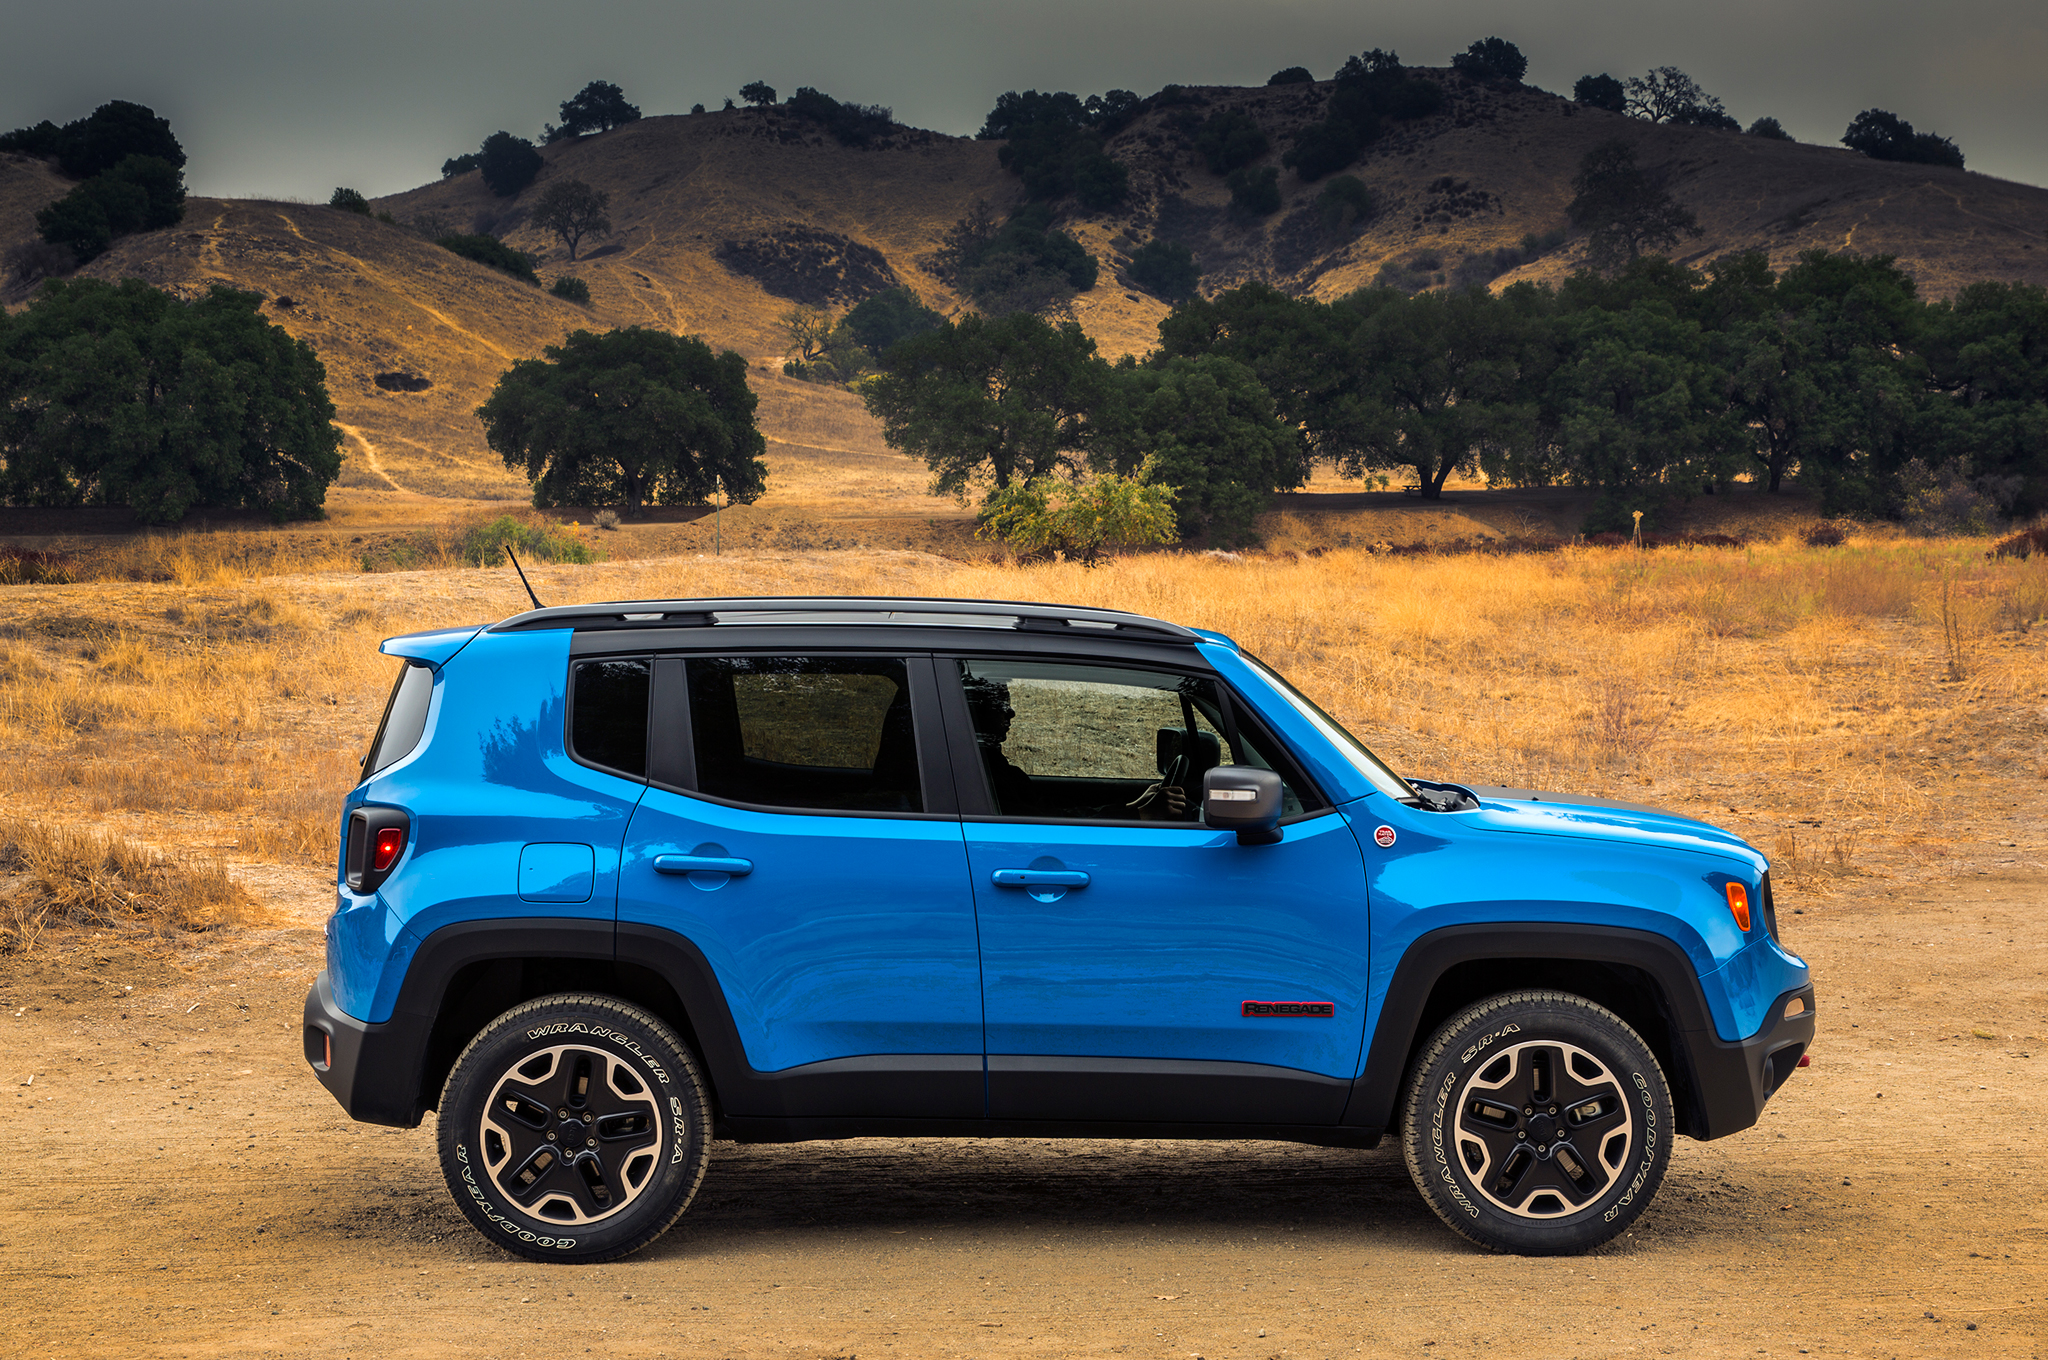 2015 jeep renegade blue side exterior 737 cars performance reviews and test drive